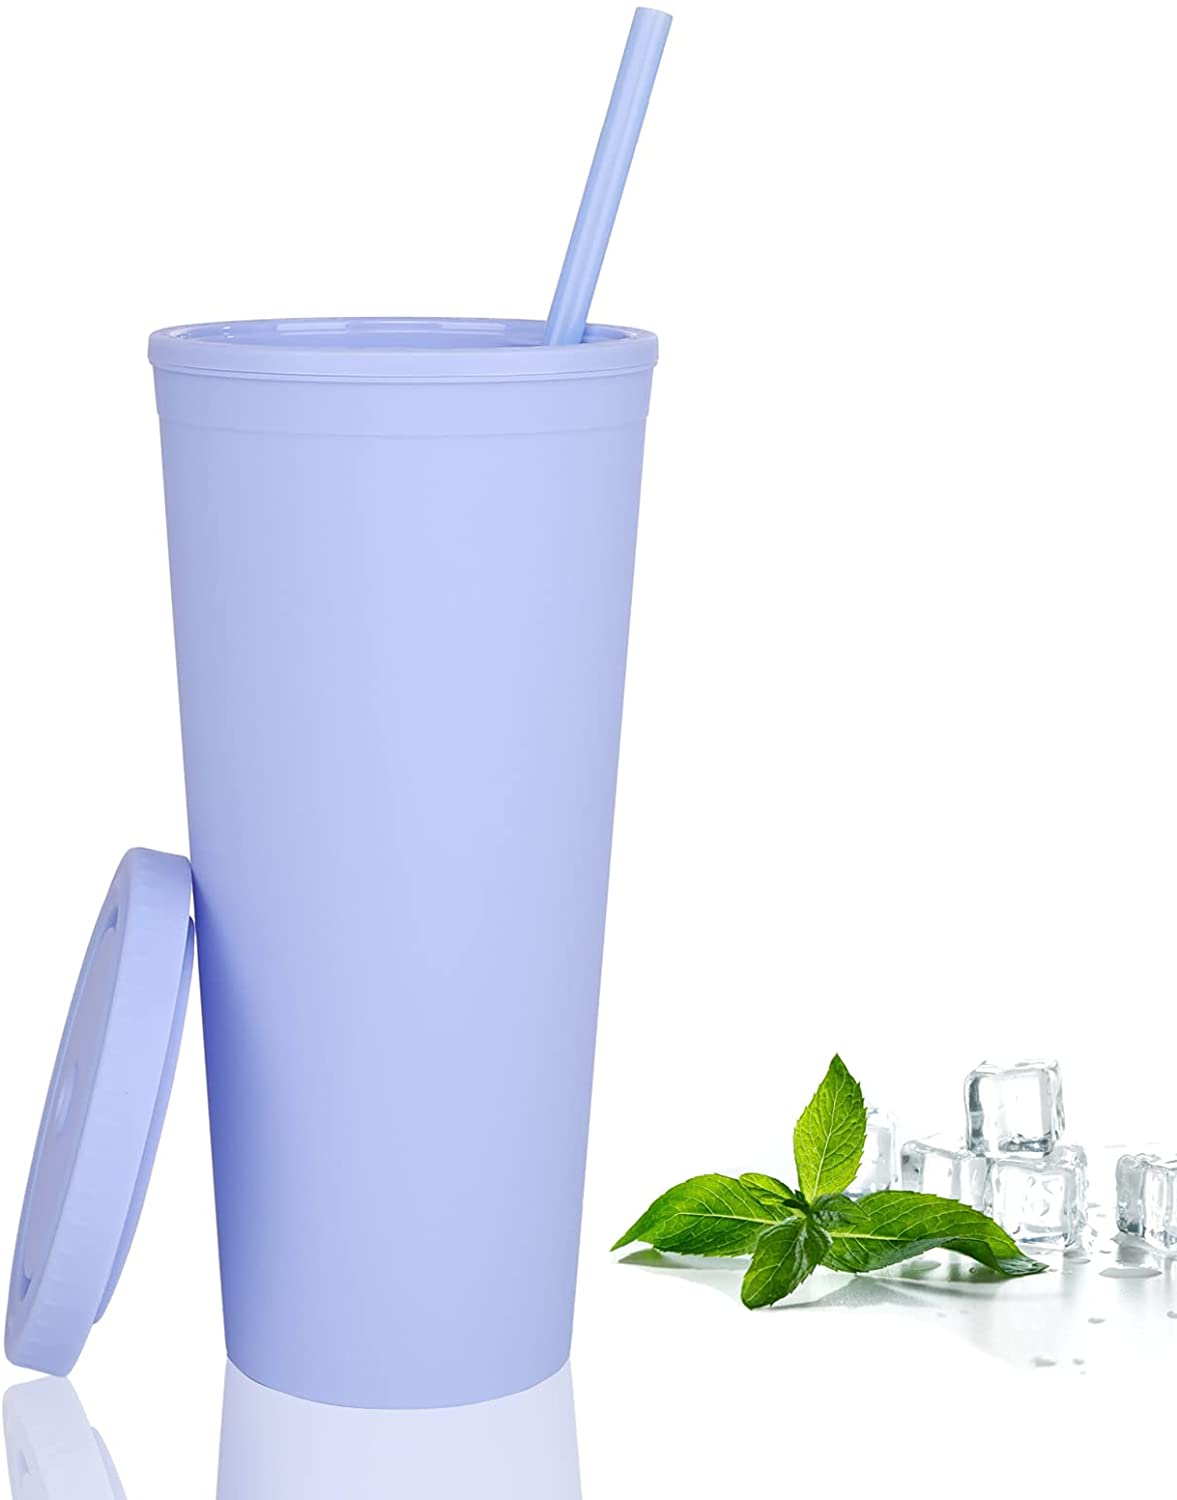 22oz Pastel Colored Acrylic Cups with Lids and Straws | Double Wall Matte Plastic Bulk Tumblers With FREE Straw Cleaner! Vinyl Customizable DIY Gifts